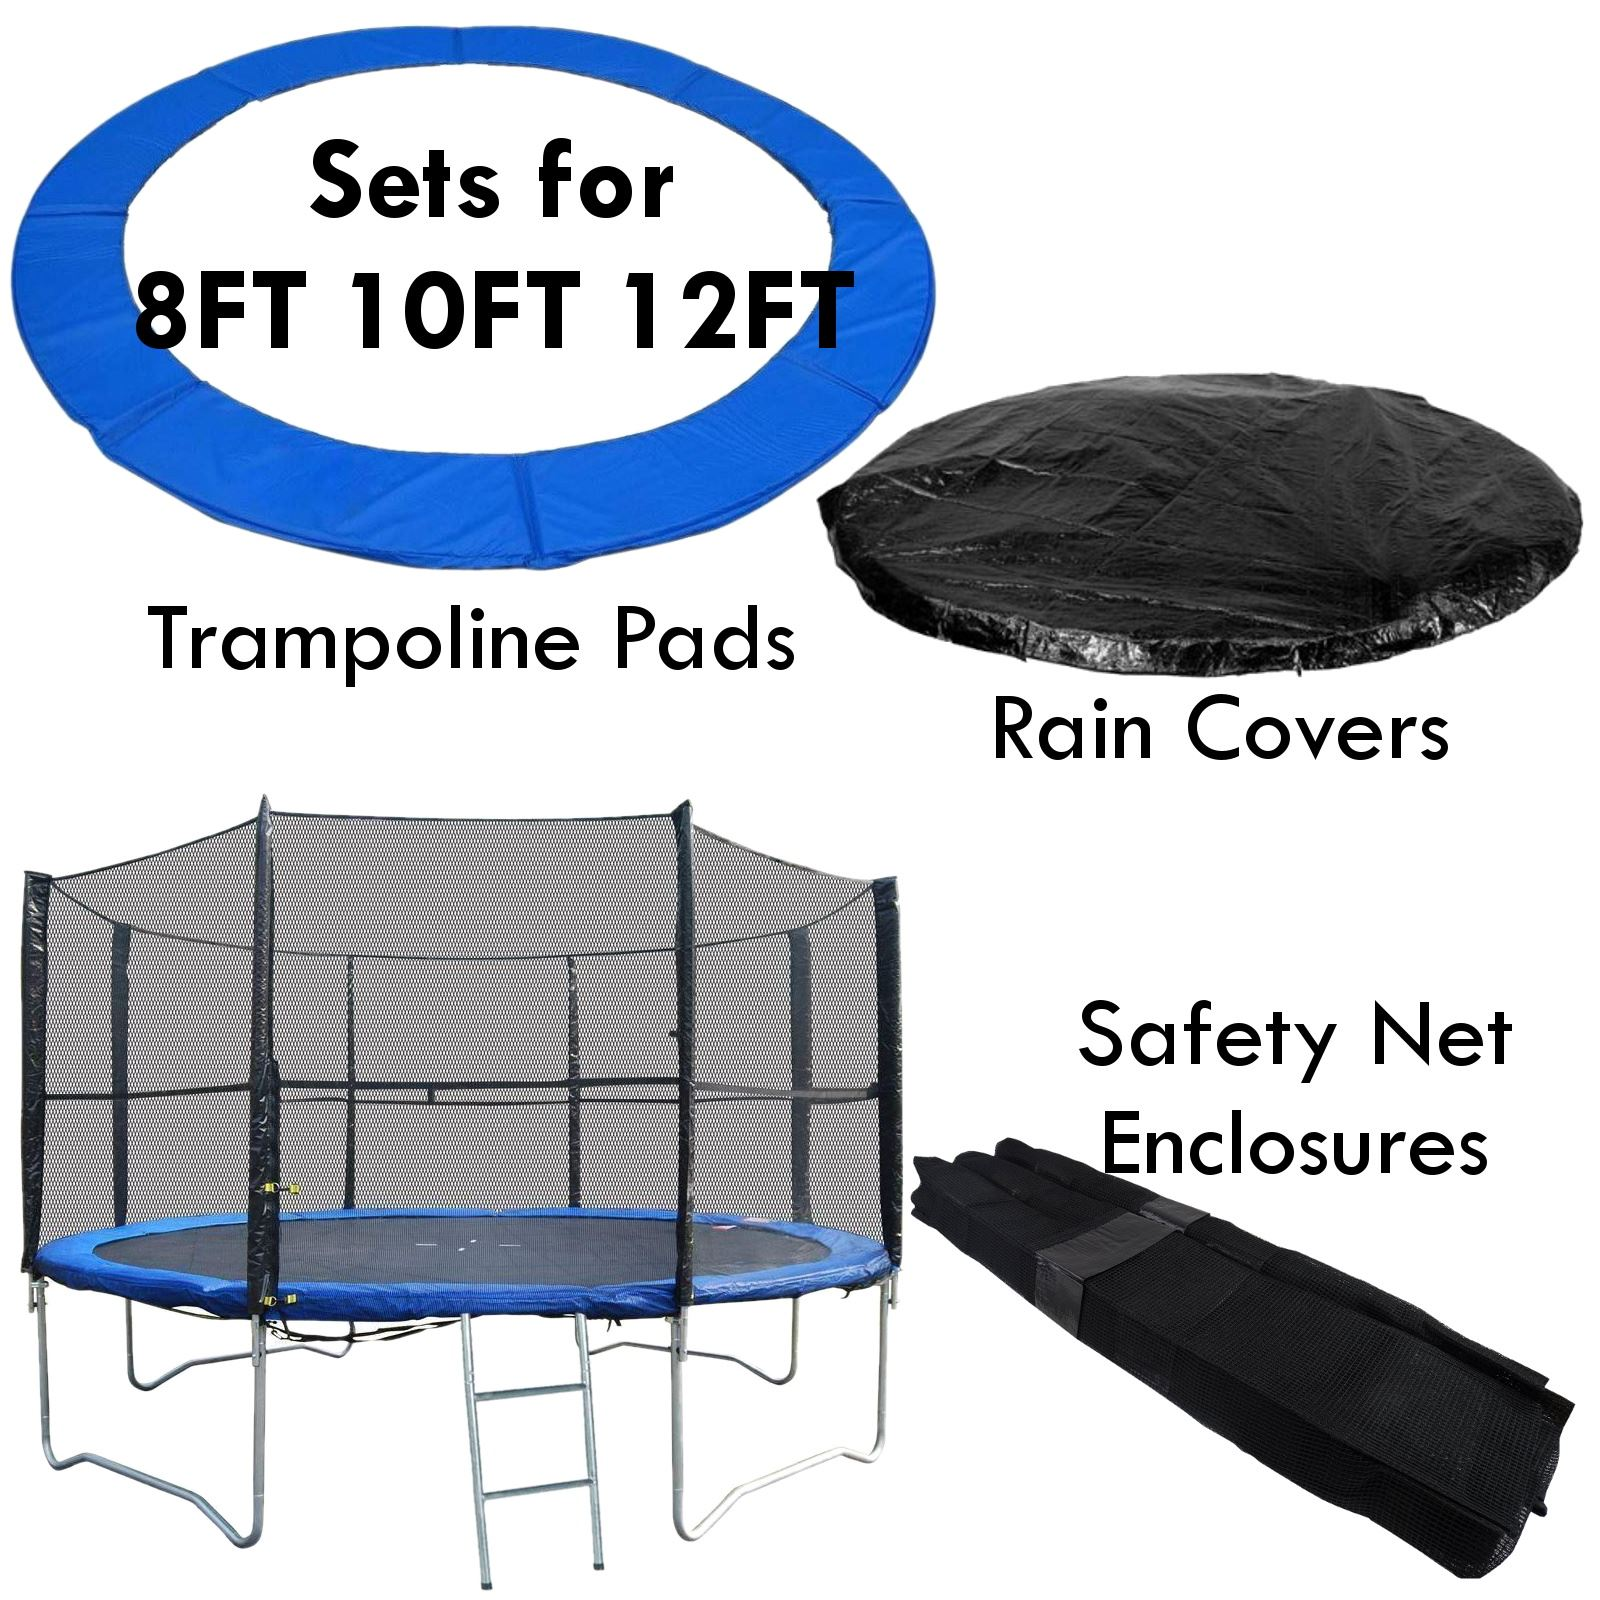 Trampoline Safety Net Padding Raincover Set 8 10 12FT